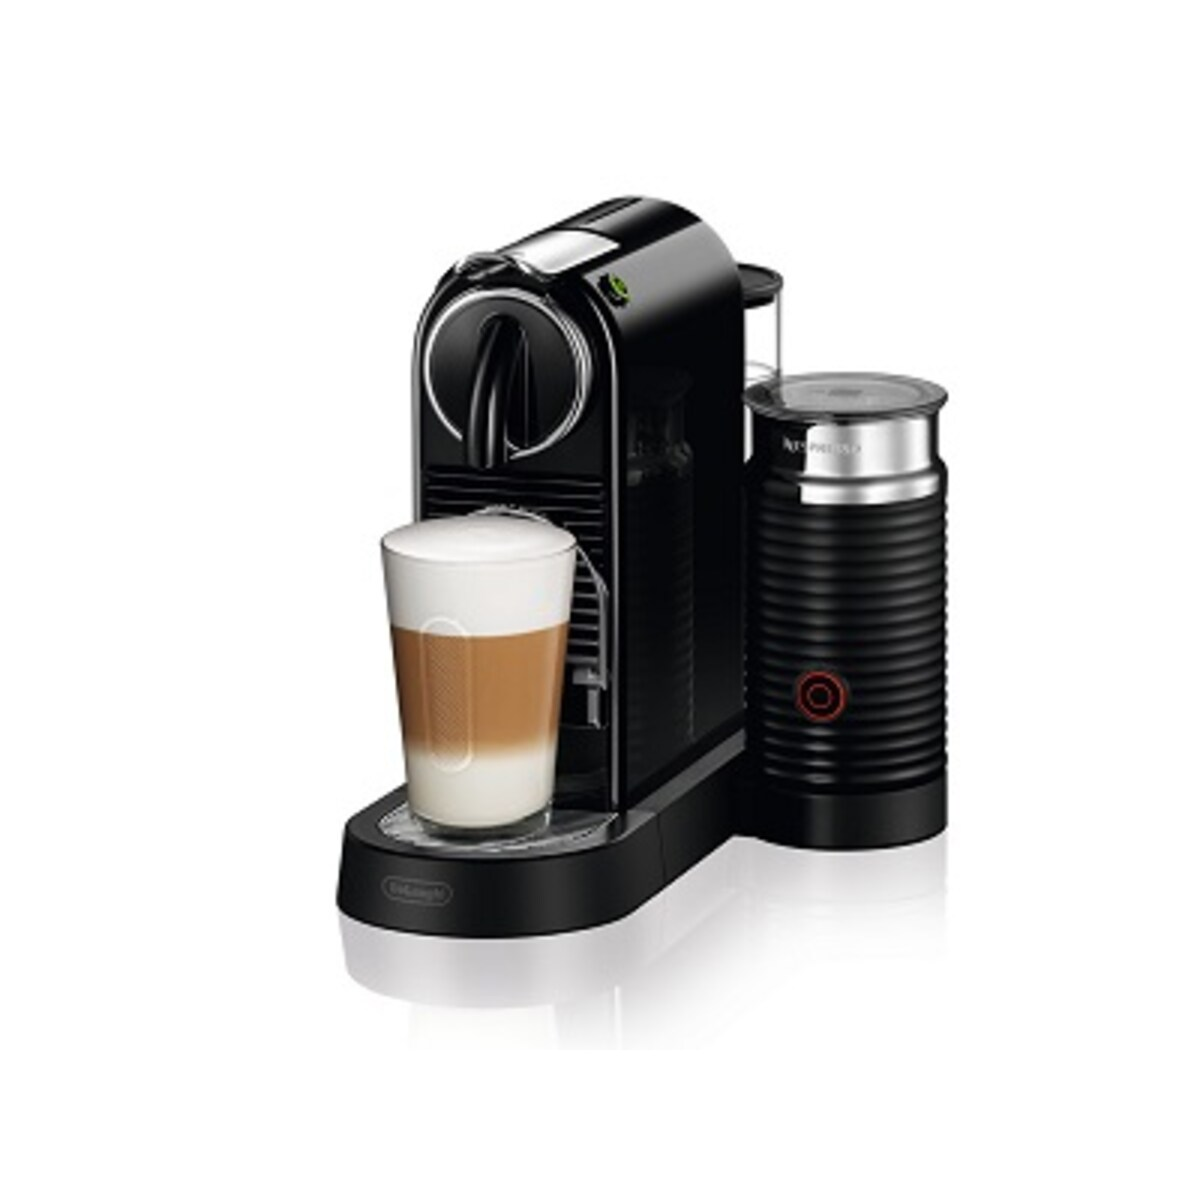 Nespresso Citiz&Milk Black EN 267.BAE кафемашина